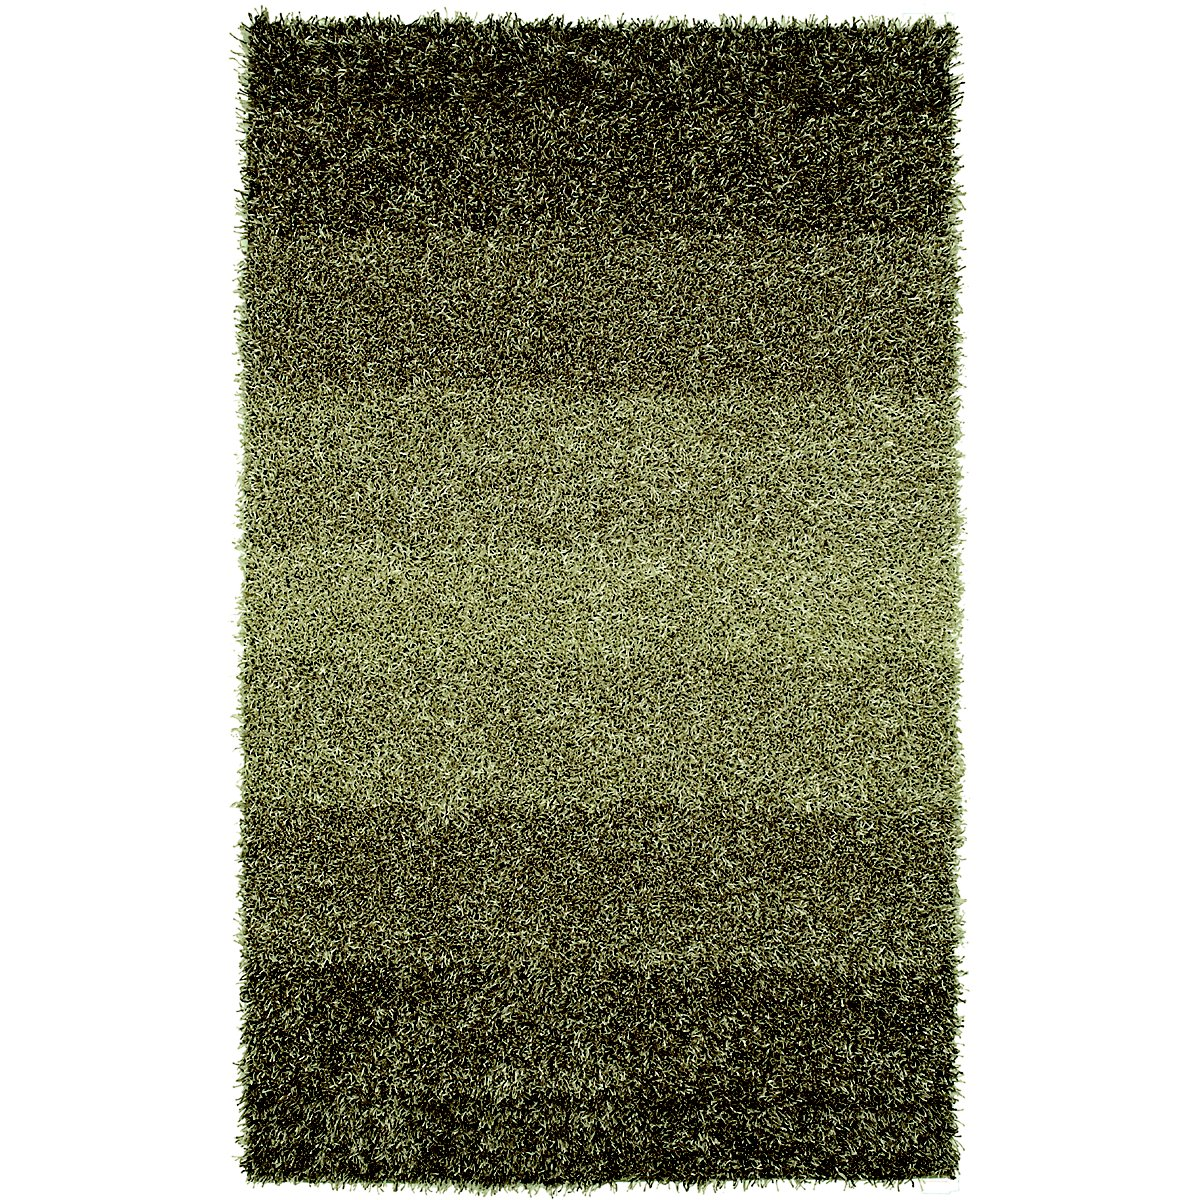 Spectrum Gray 8X10 Area Rug